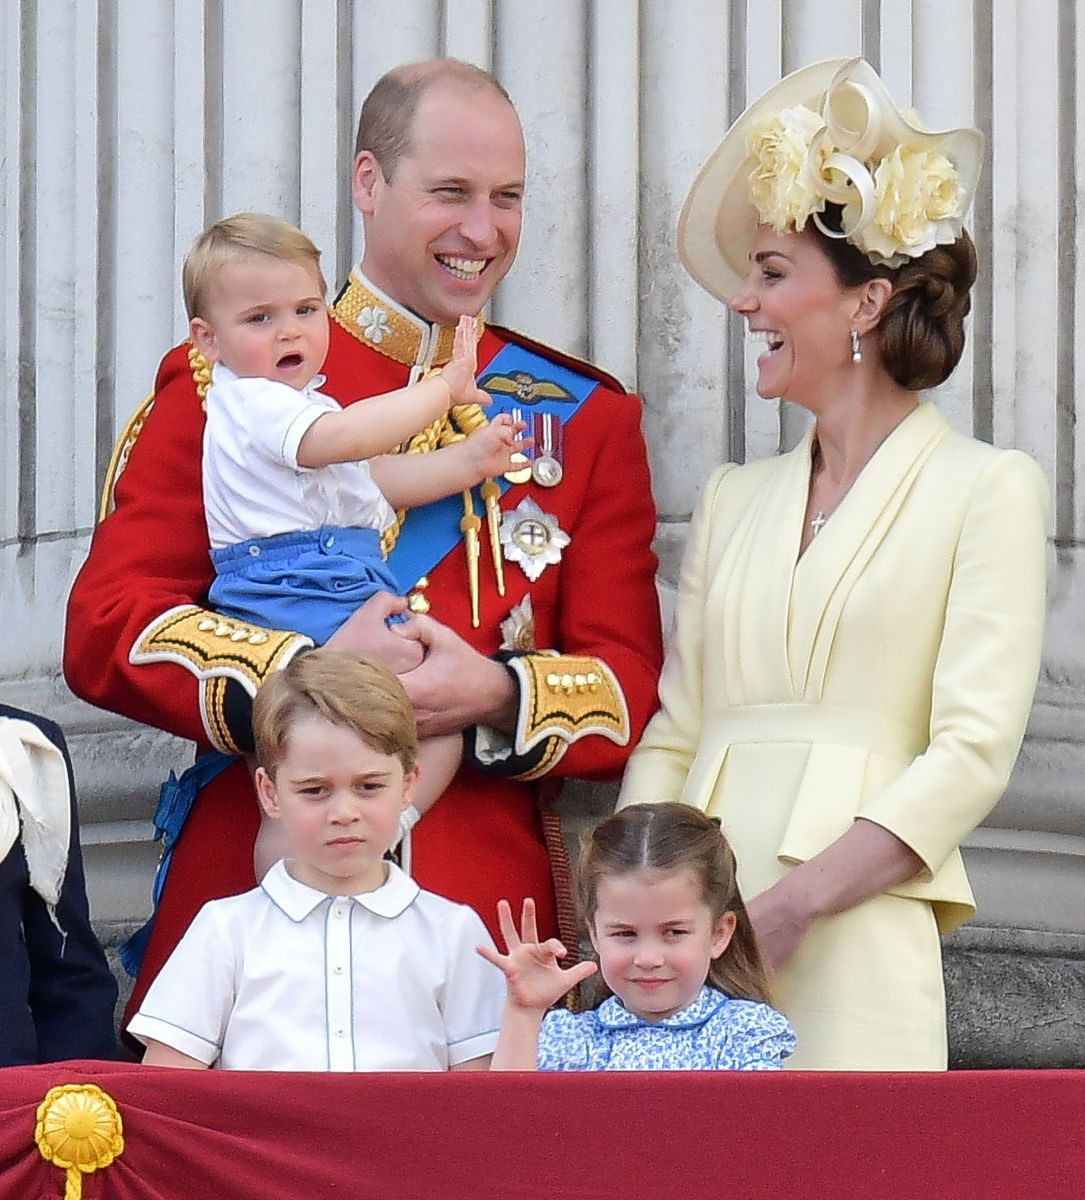 principe william, kate middleton, principe louis